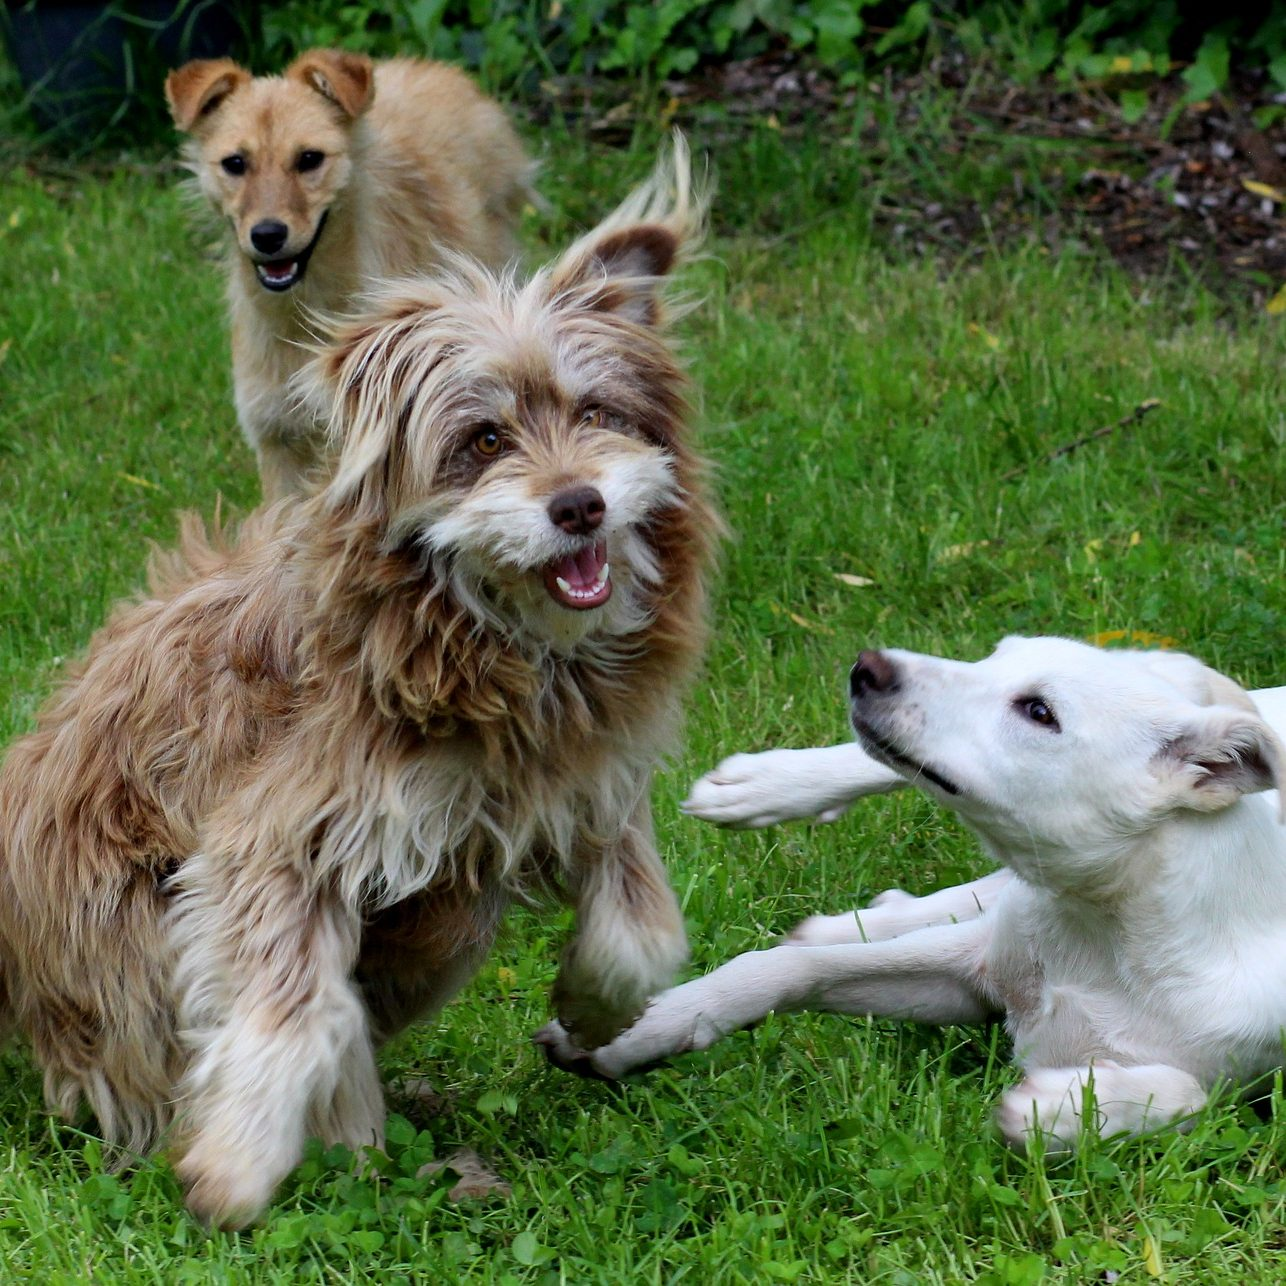 dogs-2334043_1920